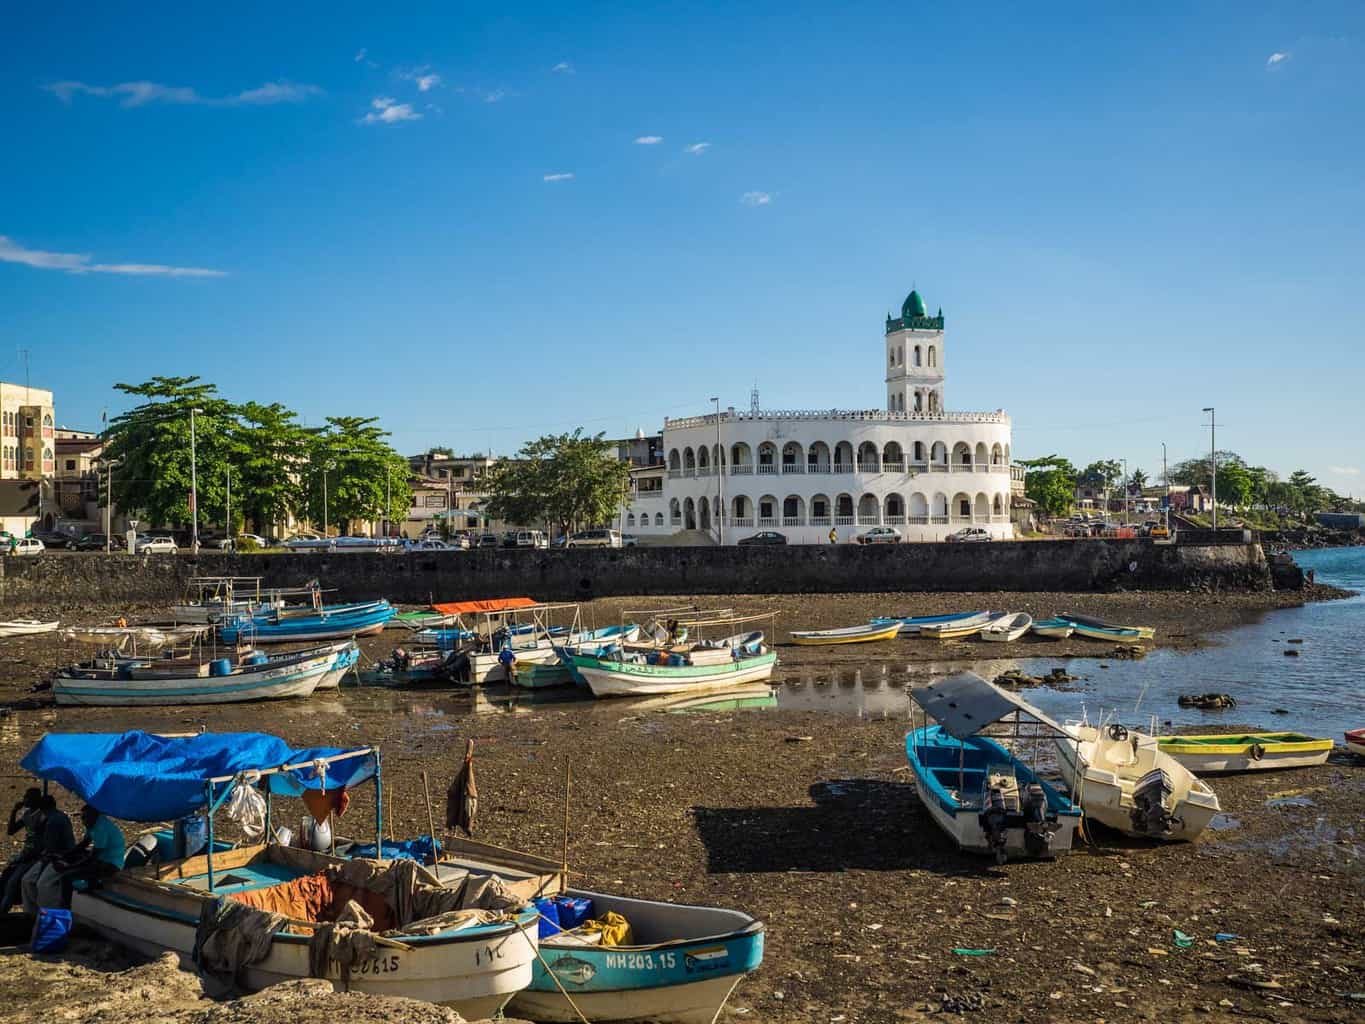 The most famous landmark Comoros the Ancienne Mosquée de Vendredi (old Friday mosque. dating back to around 1427